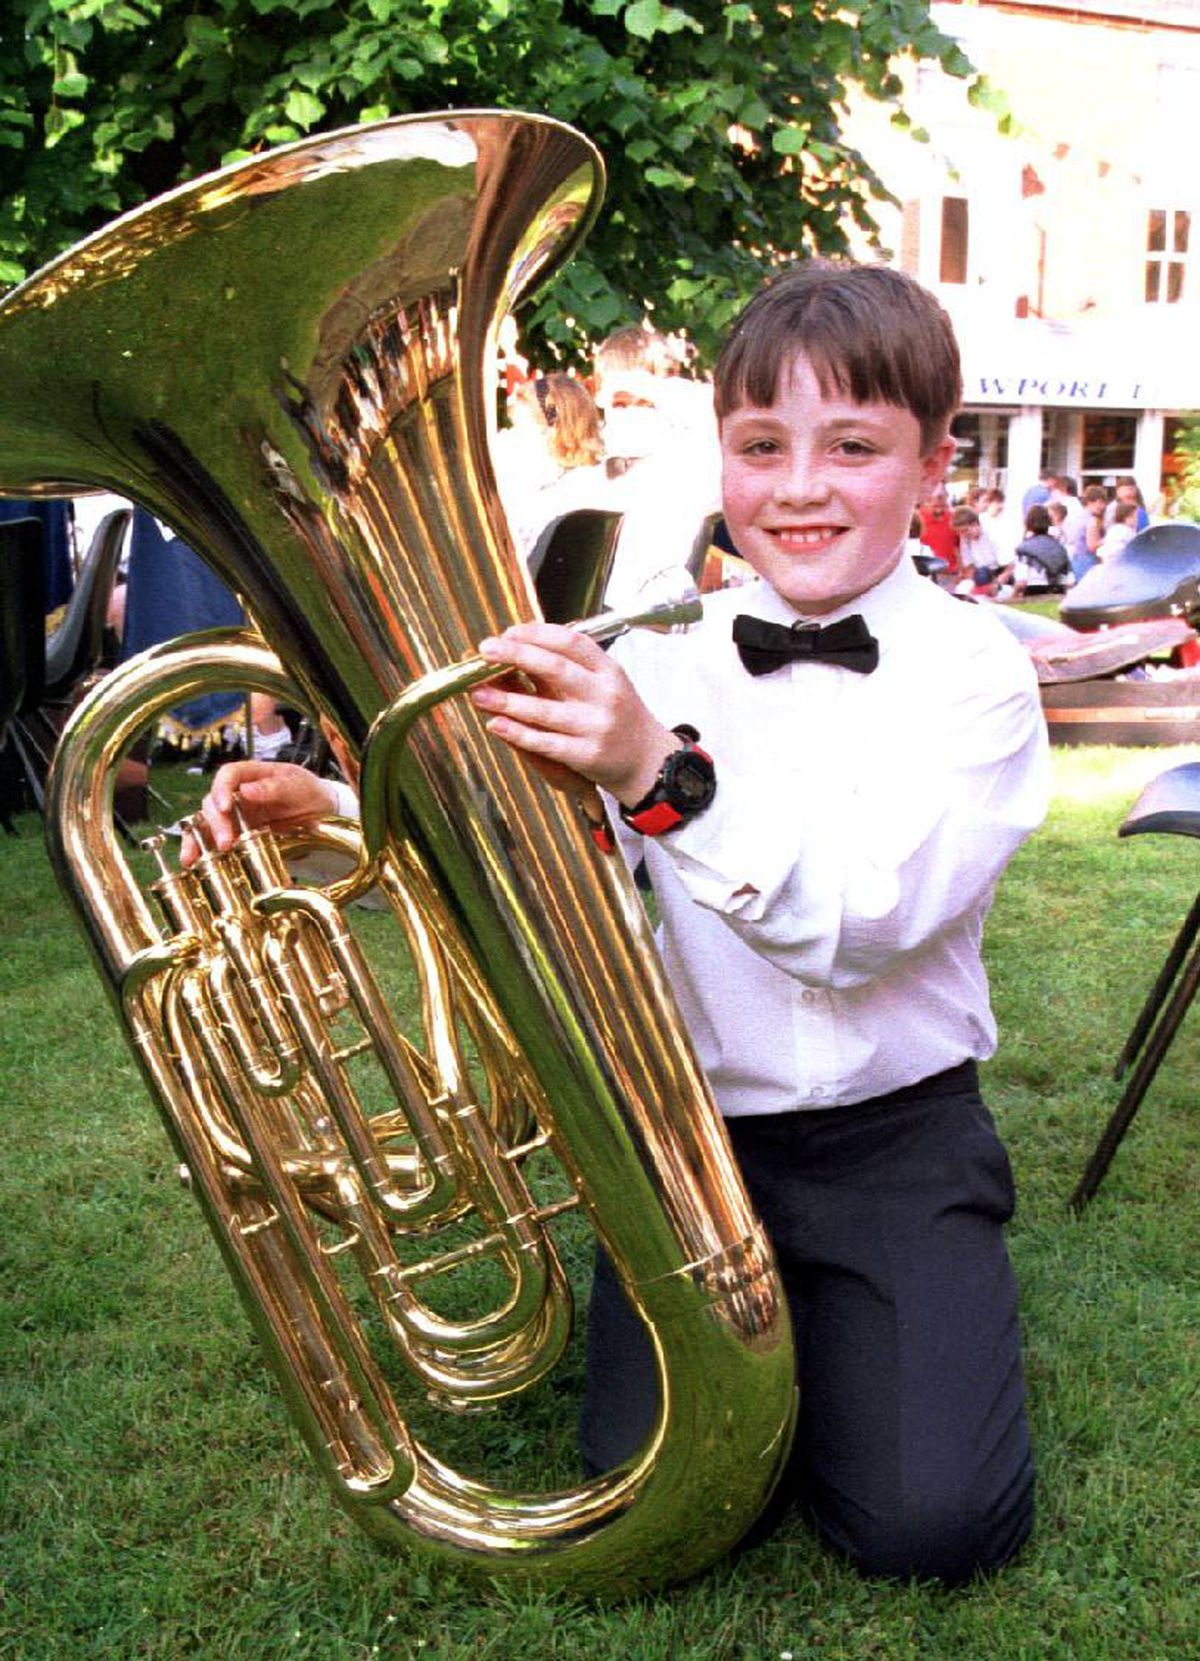 Ben as a young tuba player